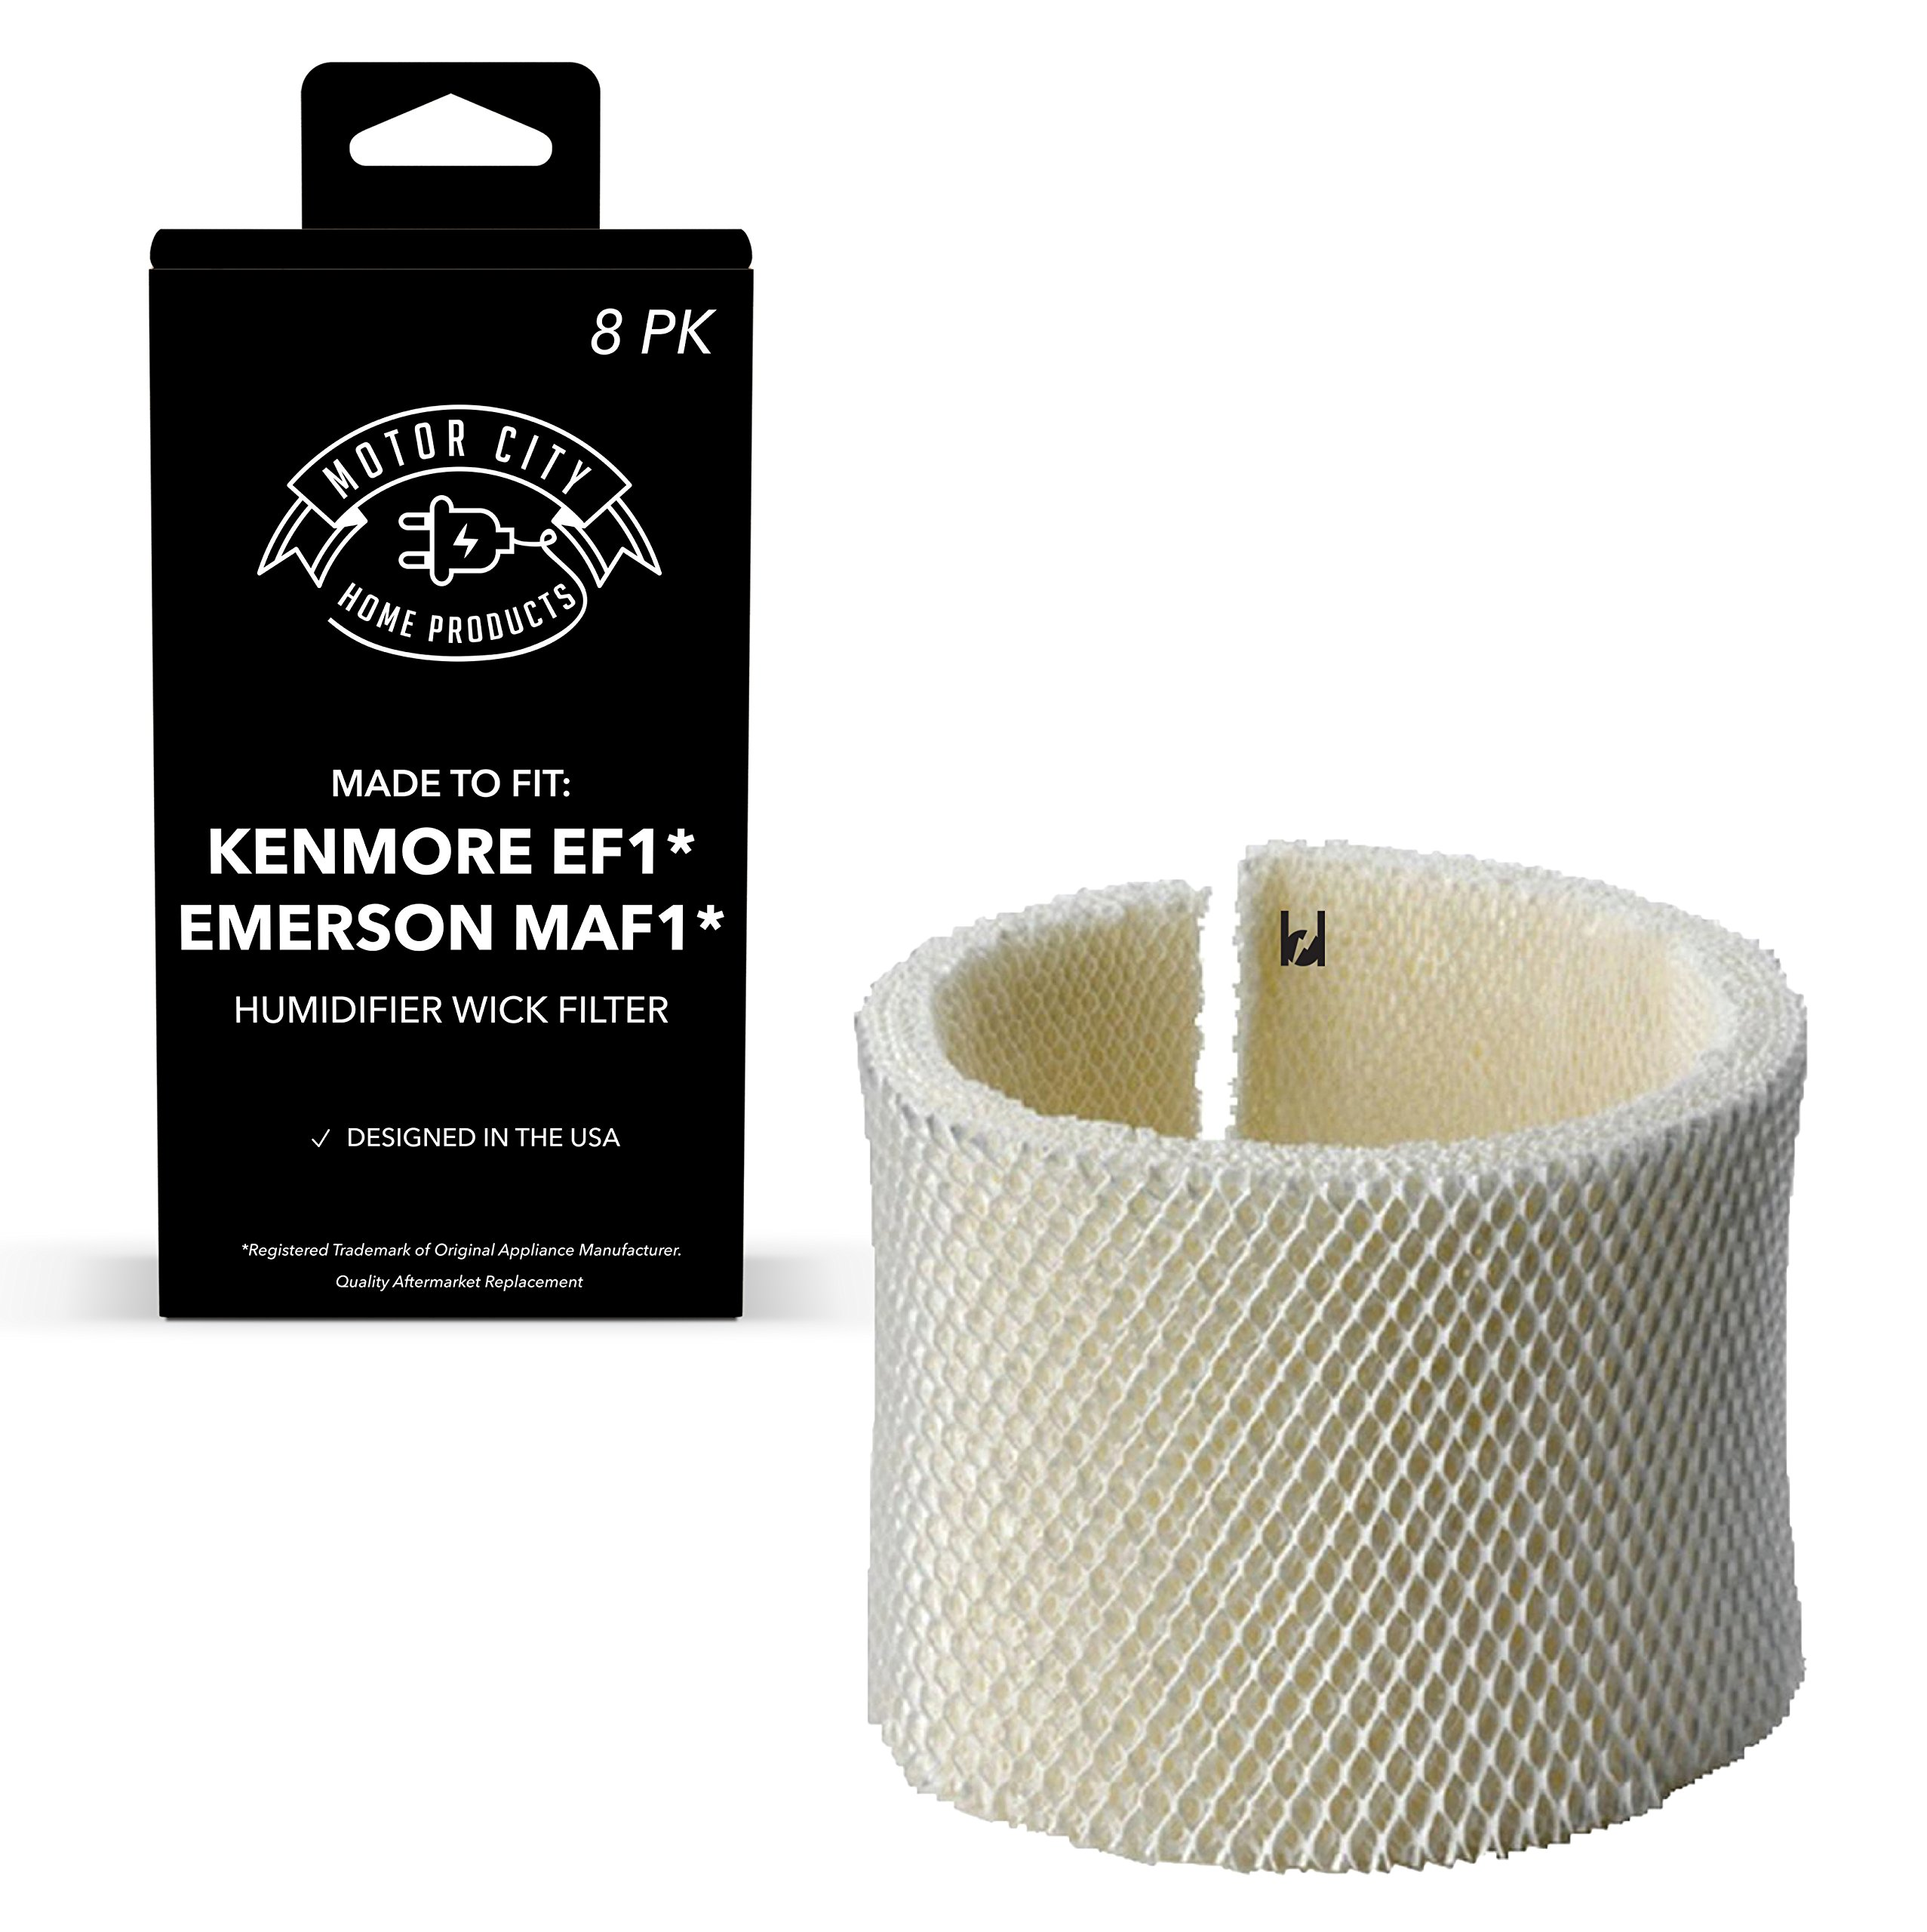 Kenmore EF1 and Emerson MAF1 Compatible Humidifier Wick Filter Motor City Home Products Brand Replacement (8)